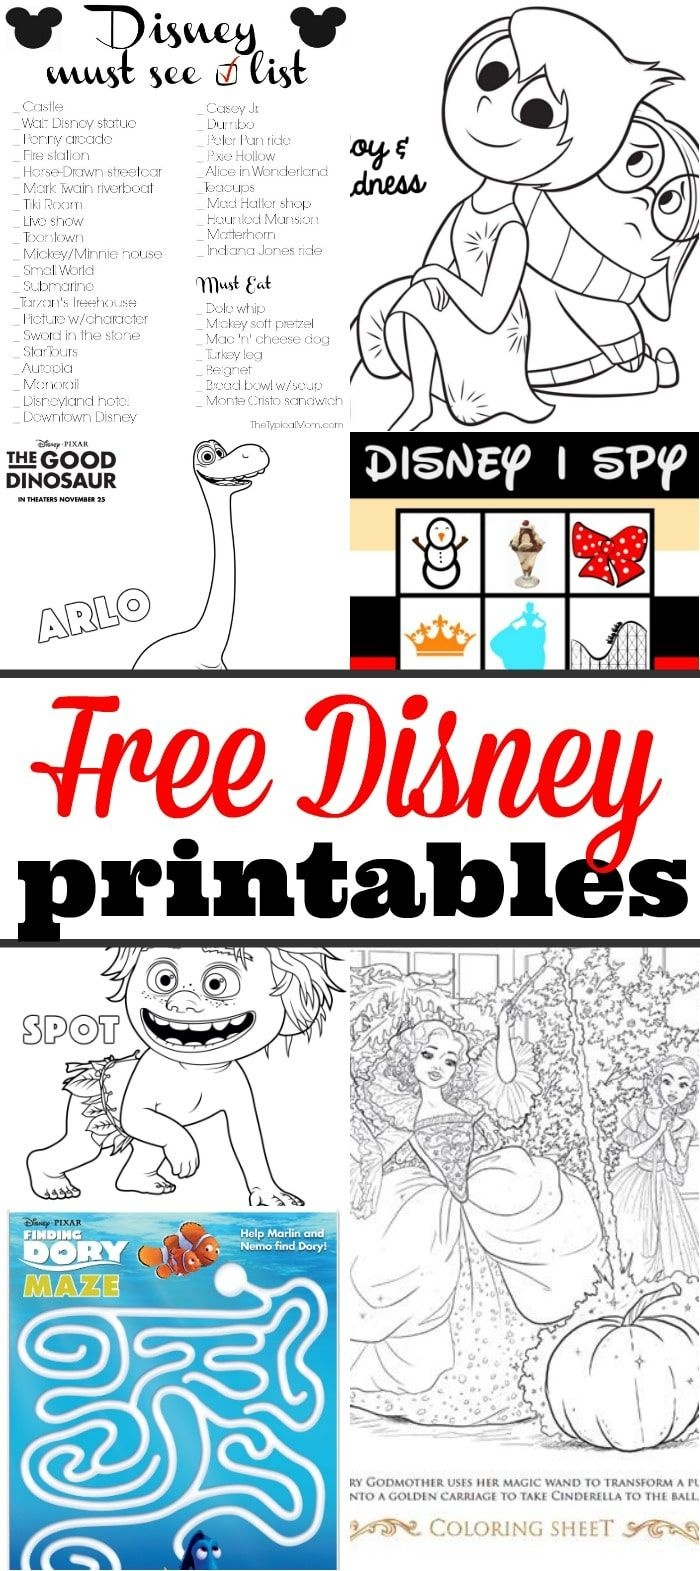 Lots Of Free Disney Printables Here From The Newest Movies! Coloring - Free Disney Activity Printables